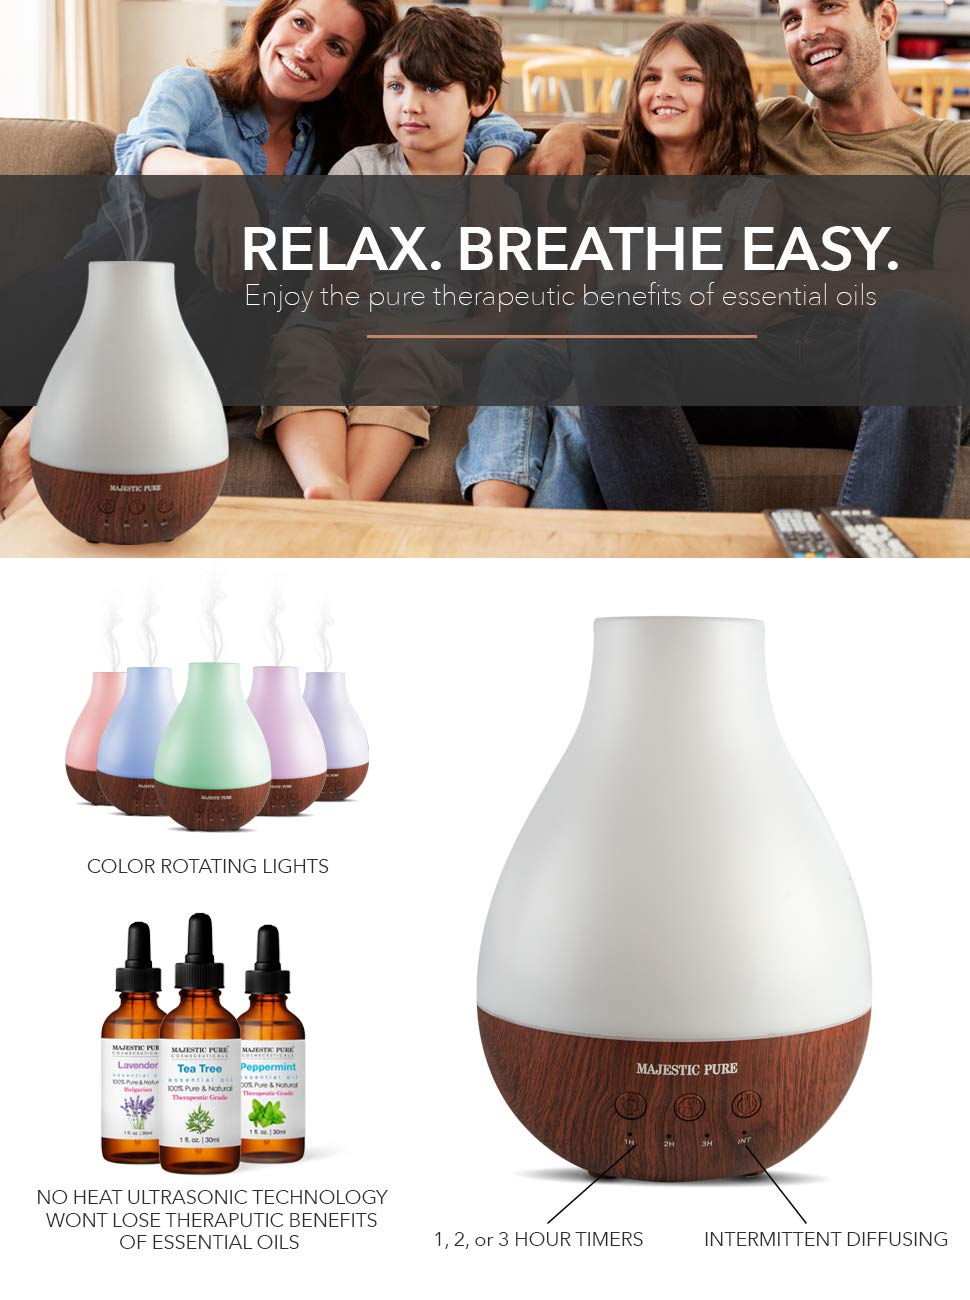 Essential Oil Diffuser by Majestic Pure - Advanced Aroma Diffuser with Strongest Mist Output - Ultrasonic, Wider Area, Cool Mist Humidifier, Longer Run Times, BPA Safe and Automatic Safety Features